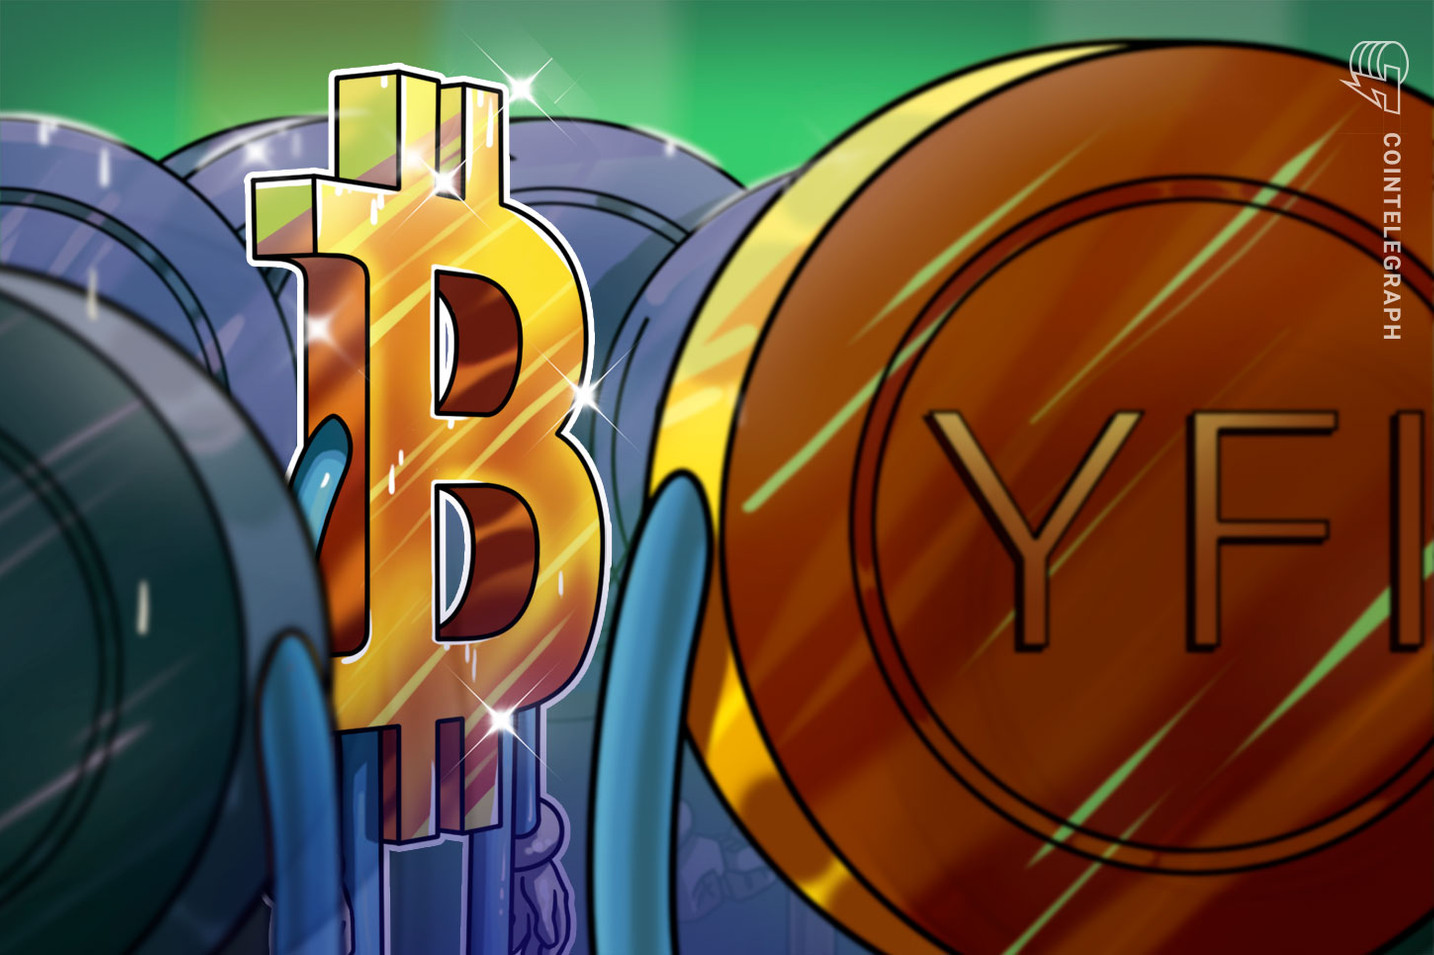 YFI Price Exceeds Bitcoin Price at $15K— But There's a Catch